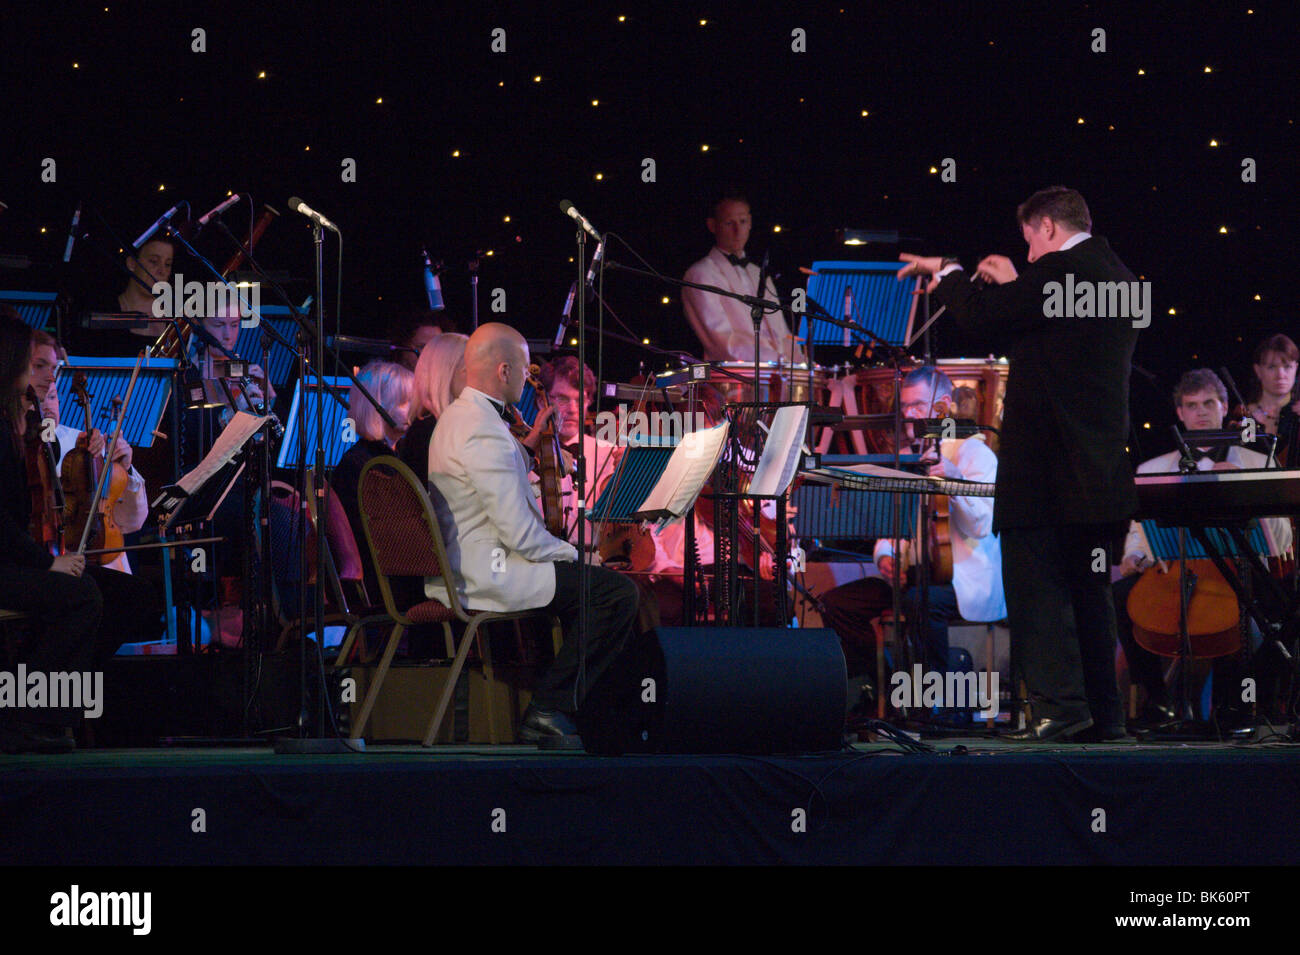 Stephen Bell conducting London Gala Orchestra Bedford Prom in Park Stock Photo